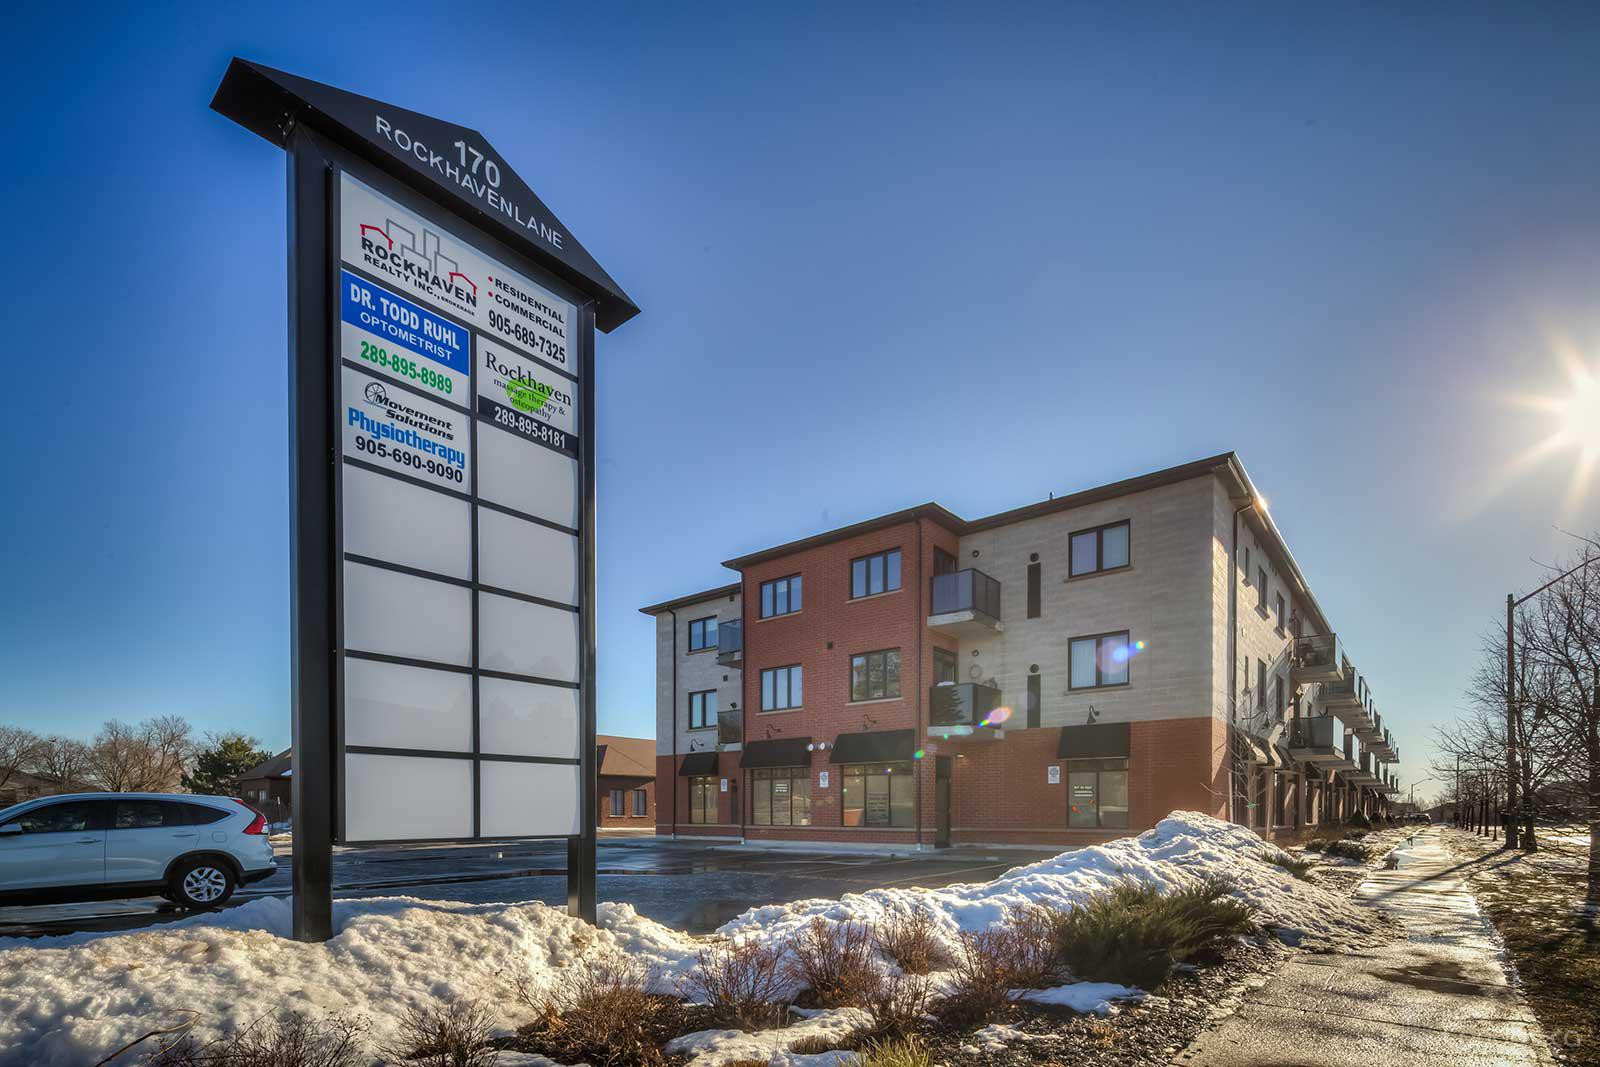 170 Rockhaven Condos at 170 Rockhaven Ln, Waterdown 0